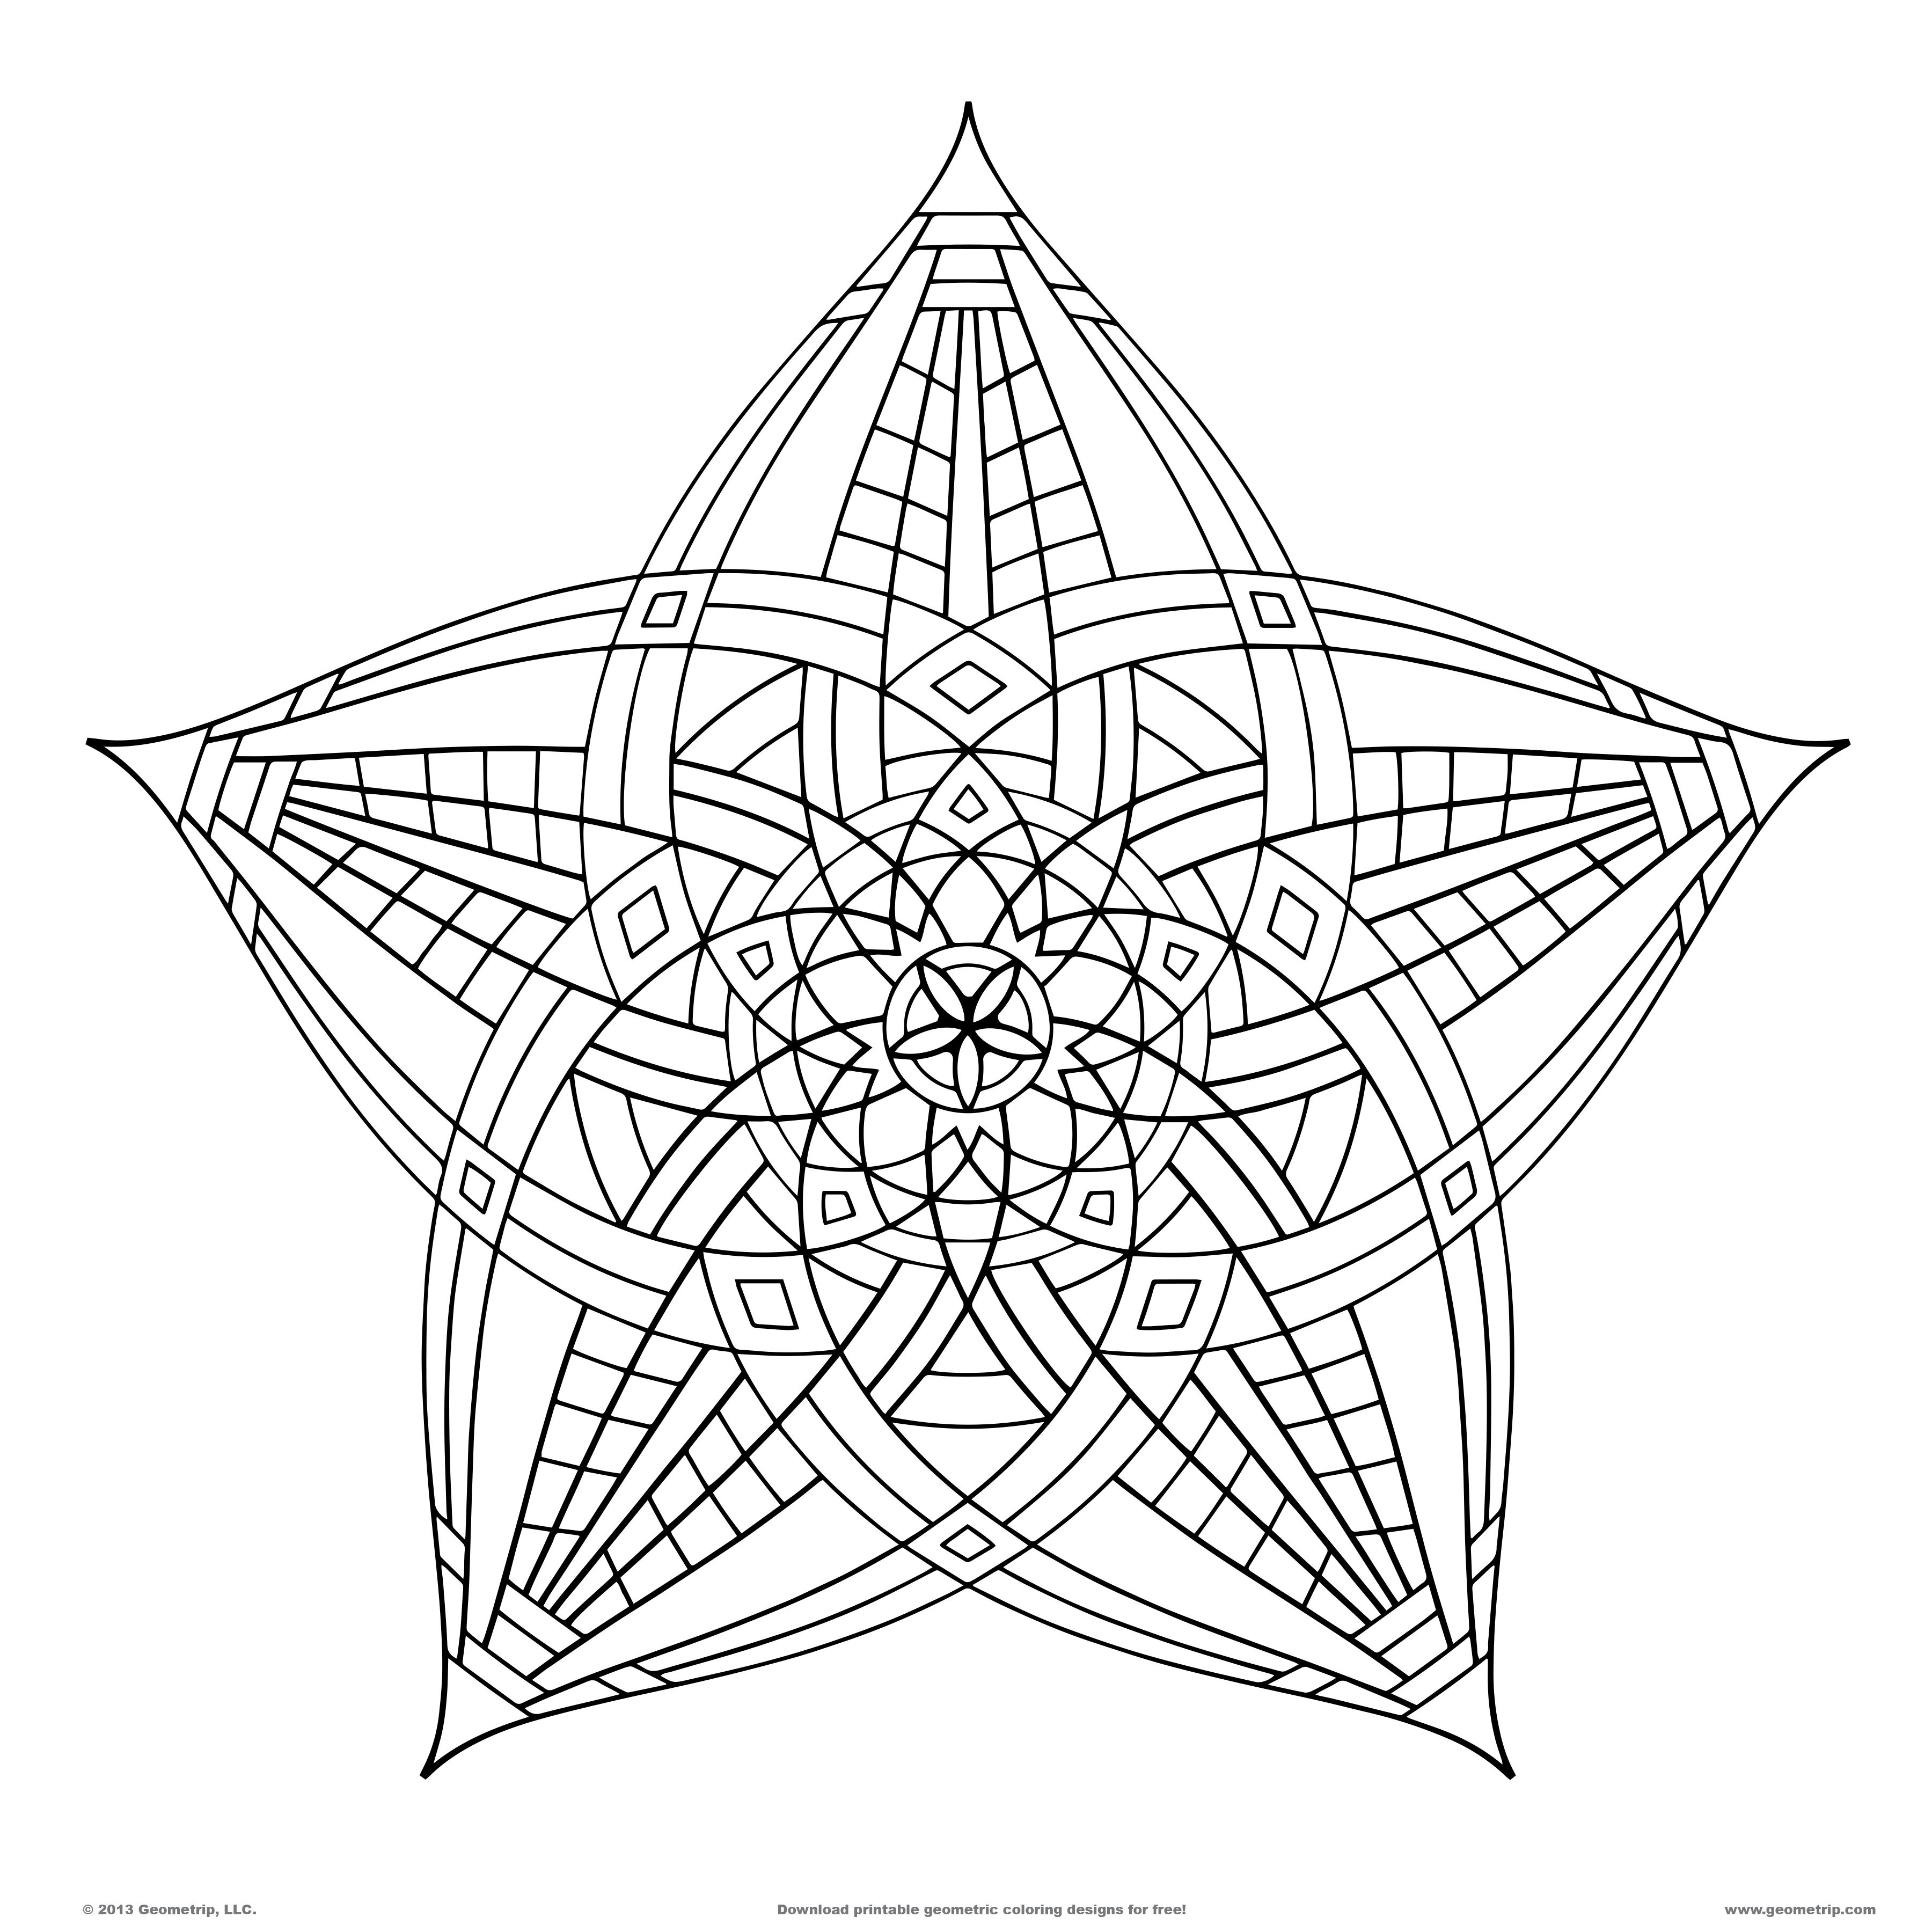 Plicated Coloring Pages For Adults Download Pdf 3600 X